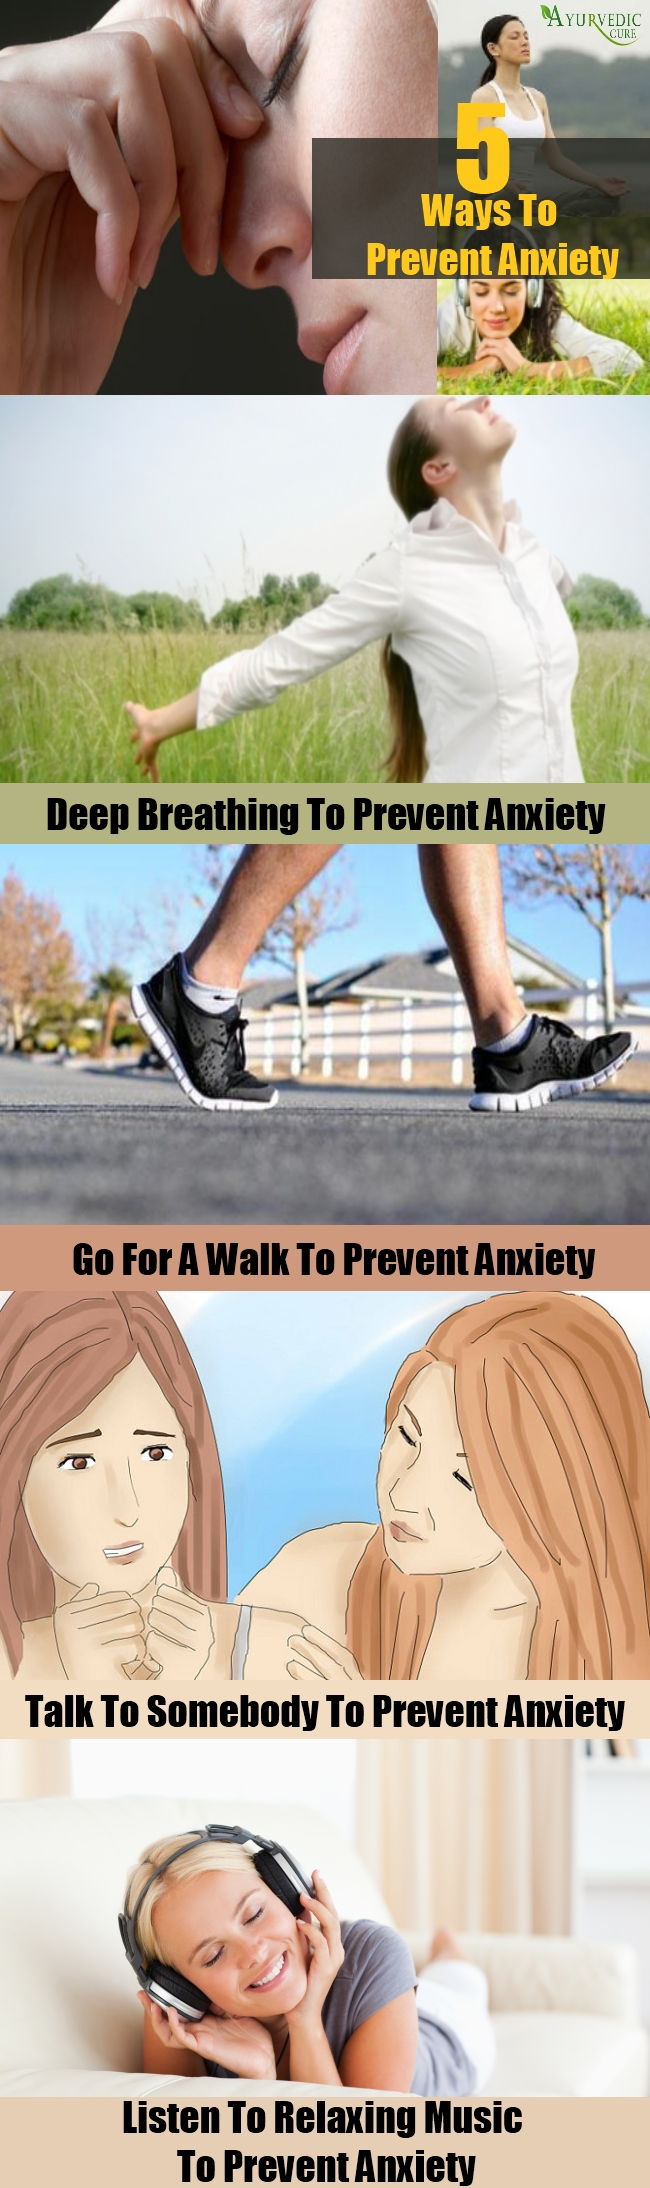 Various Ways To Prevent Anxiety